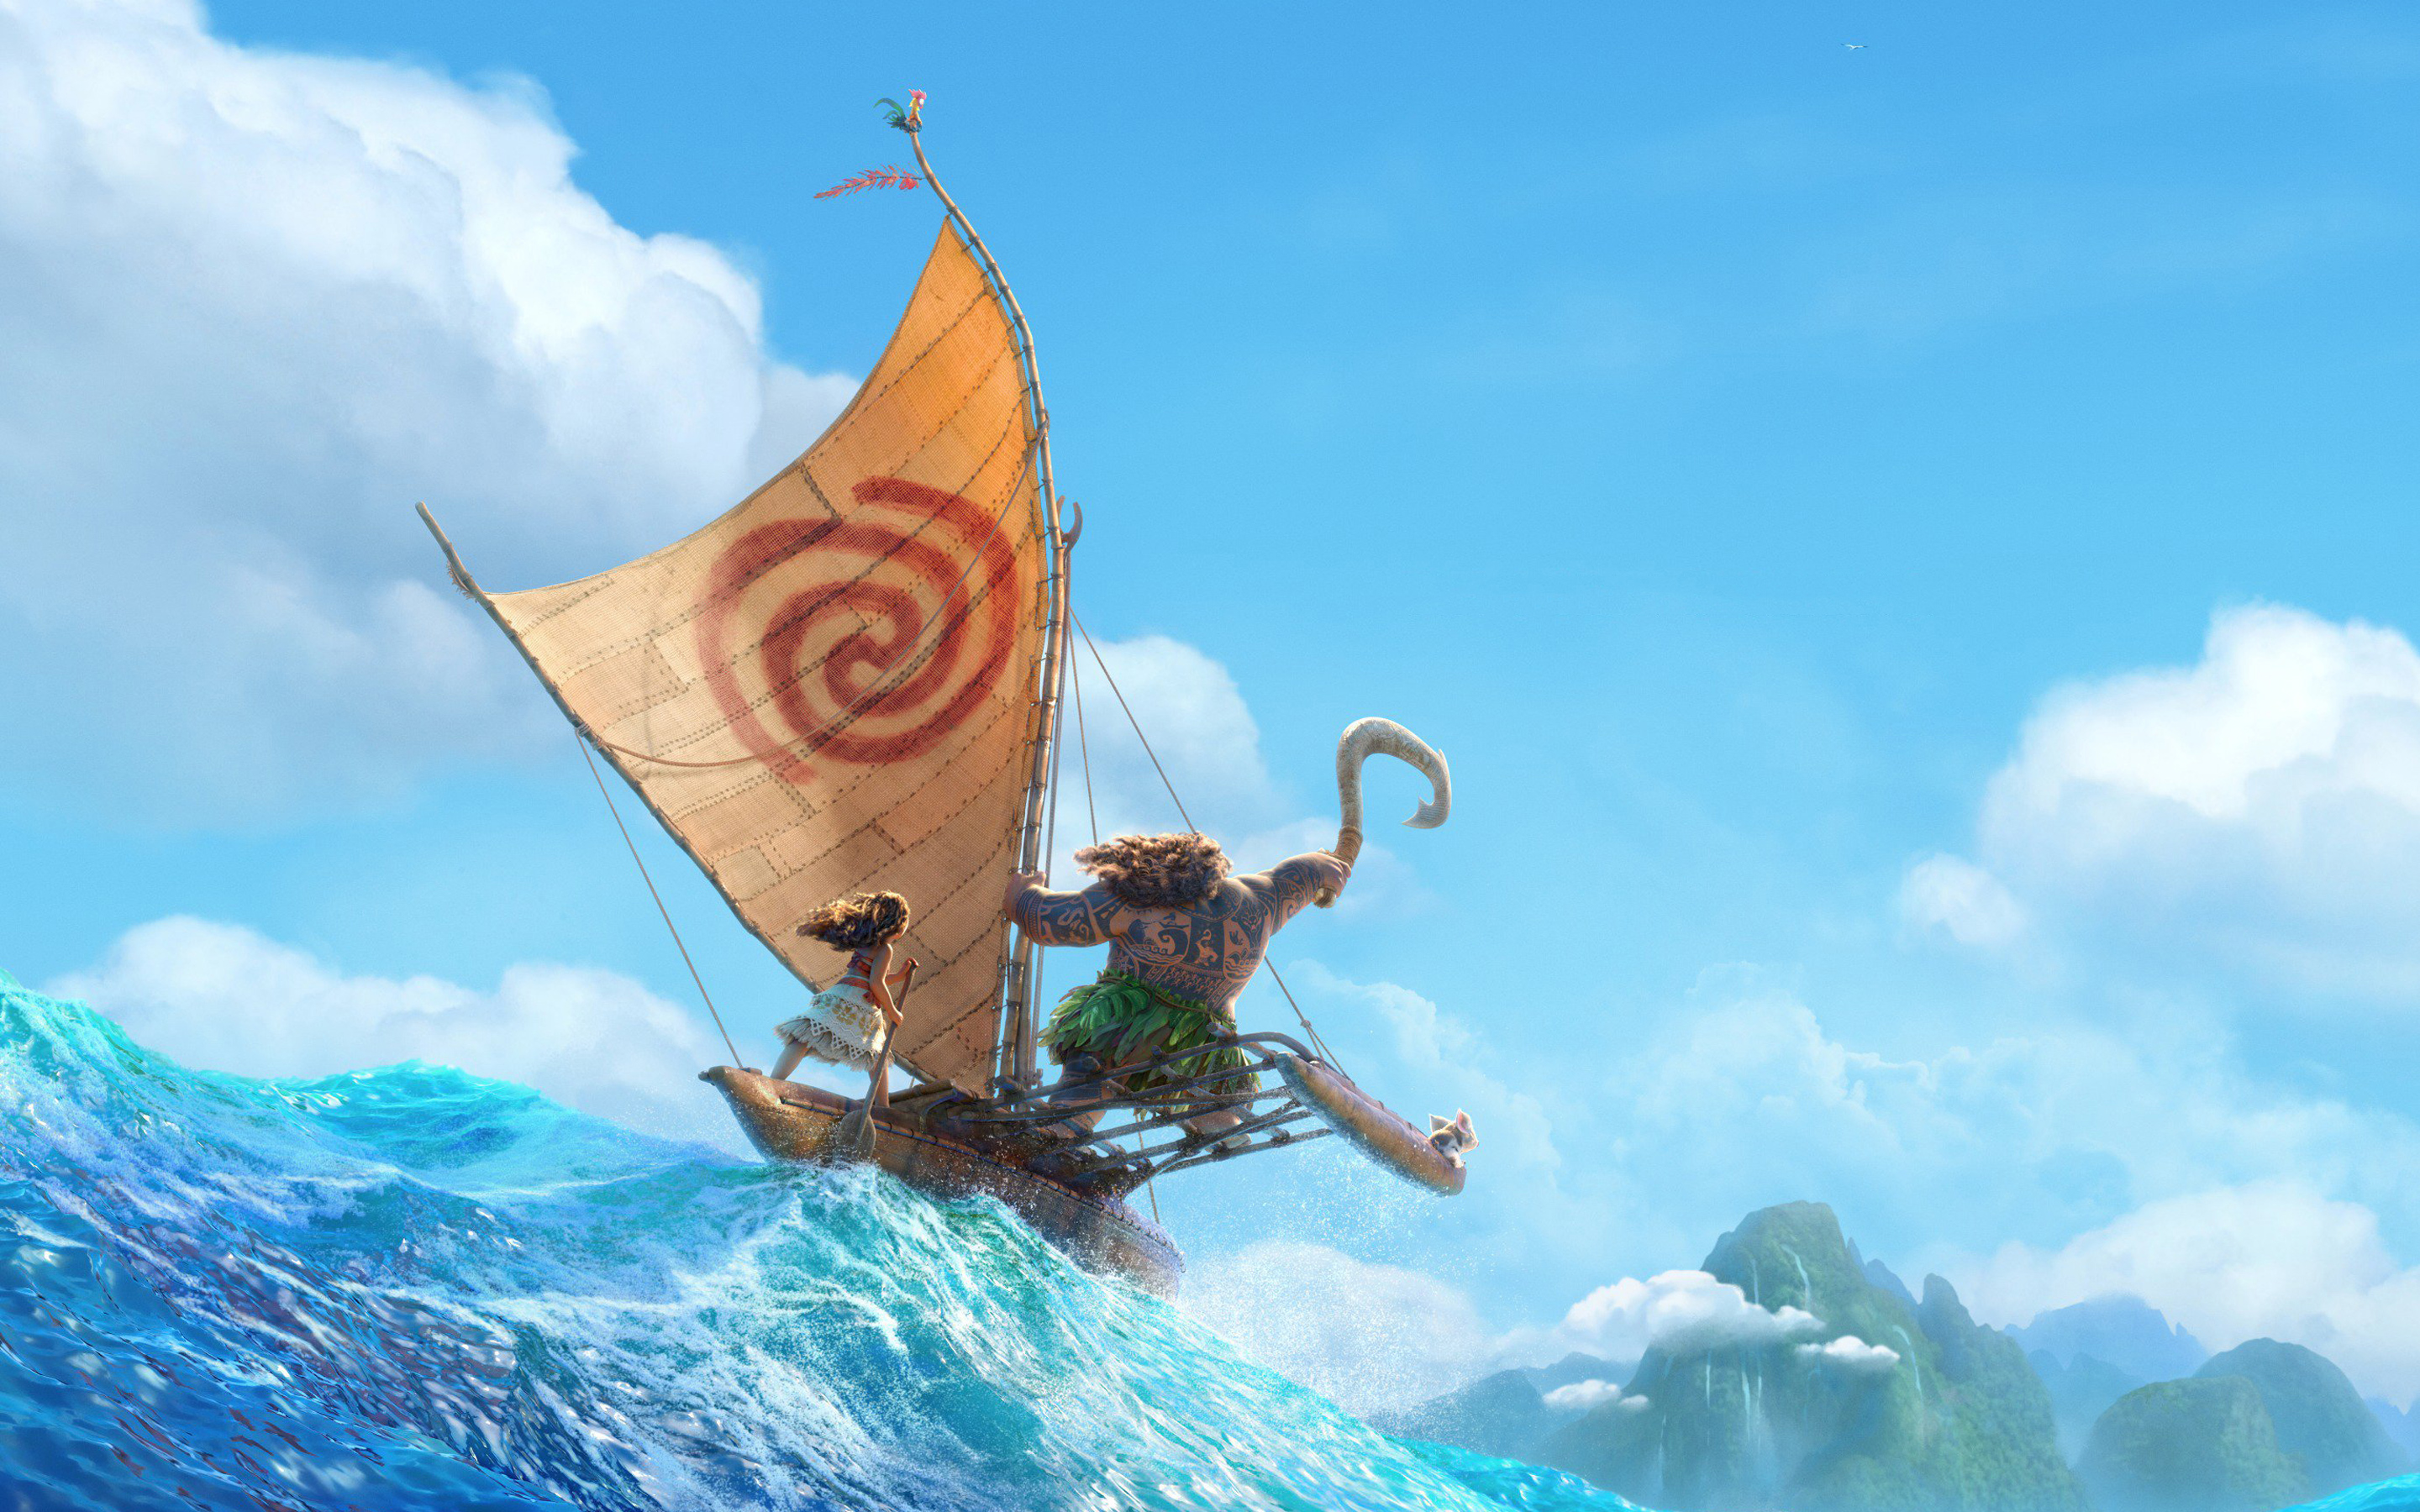 disney wallpapers, photos and desktop backgrounds up to 8K ...